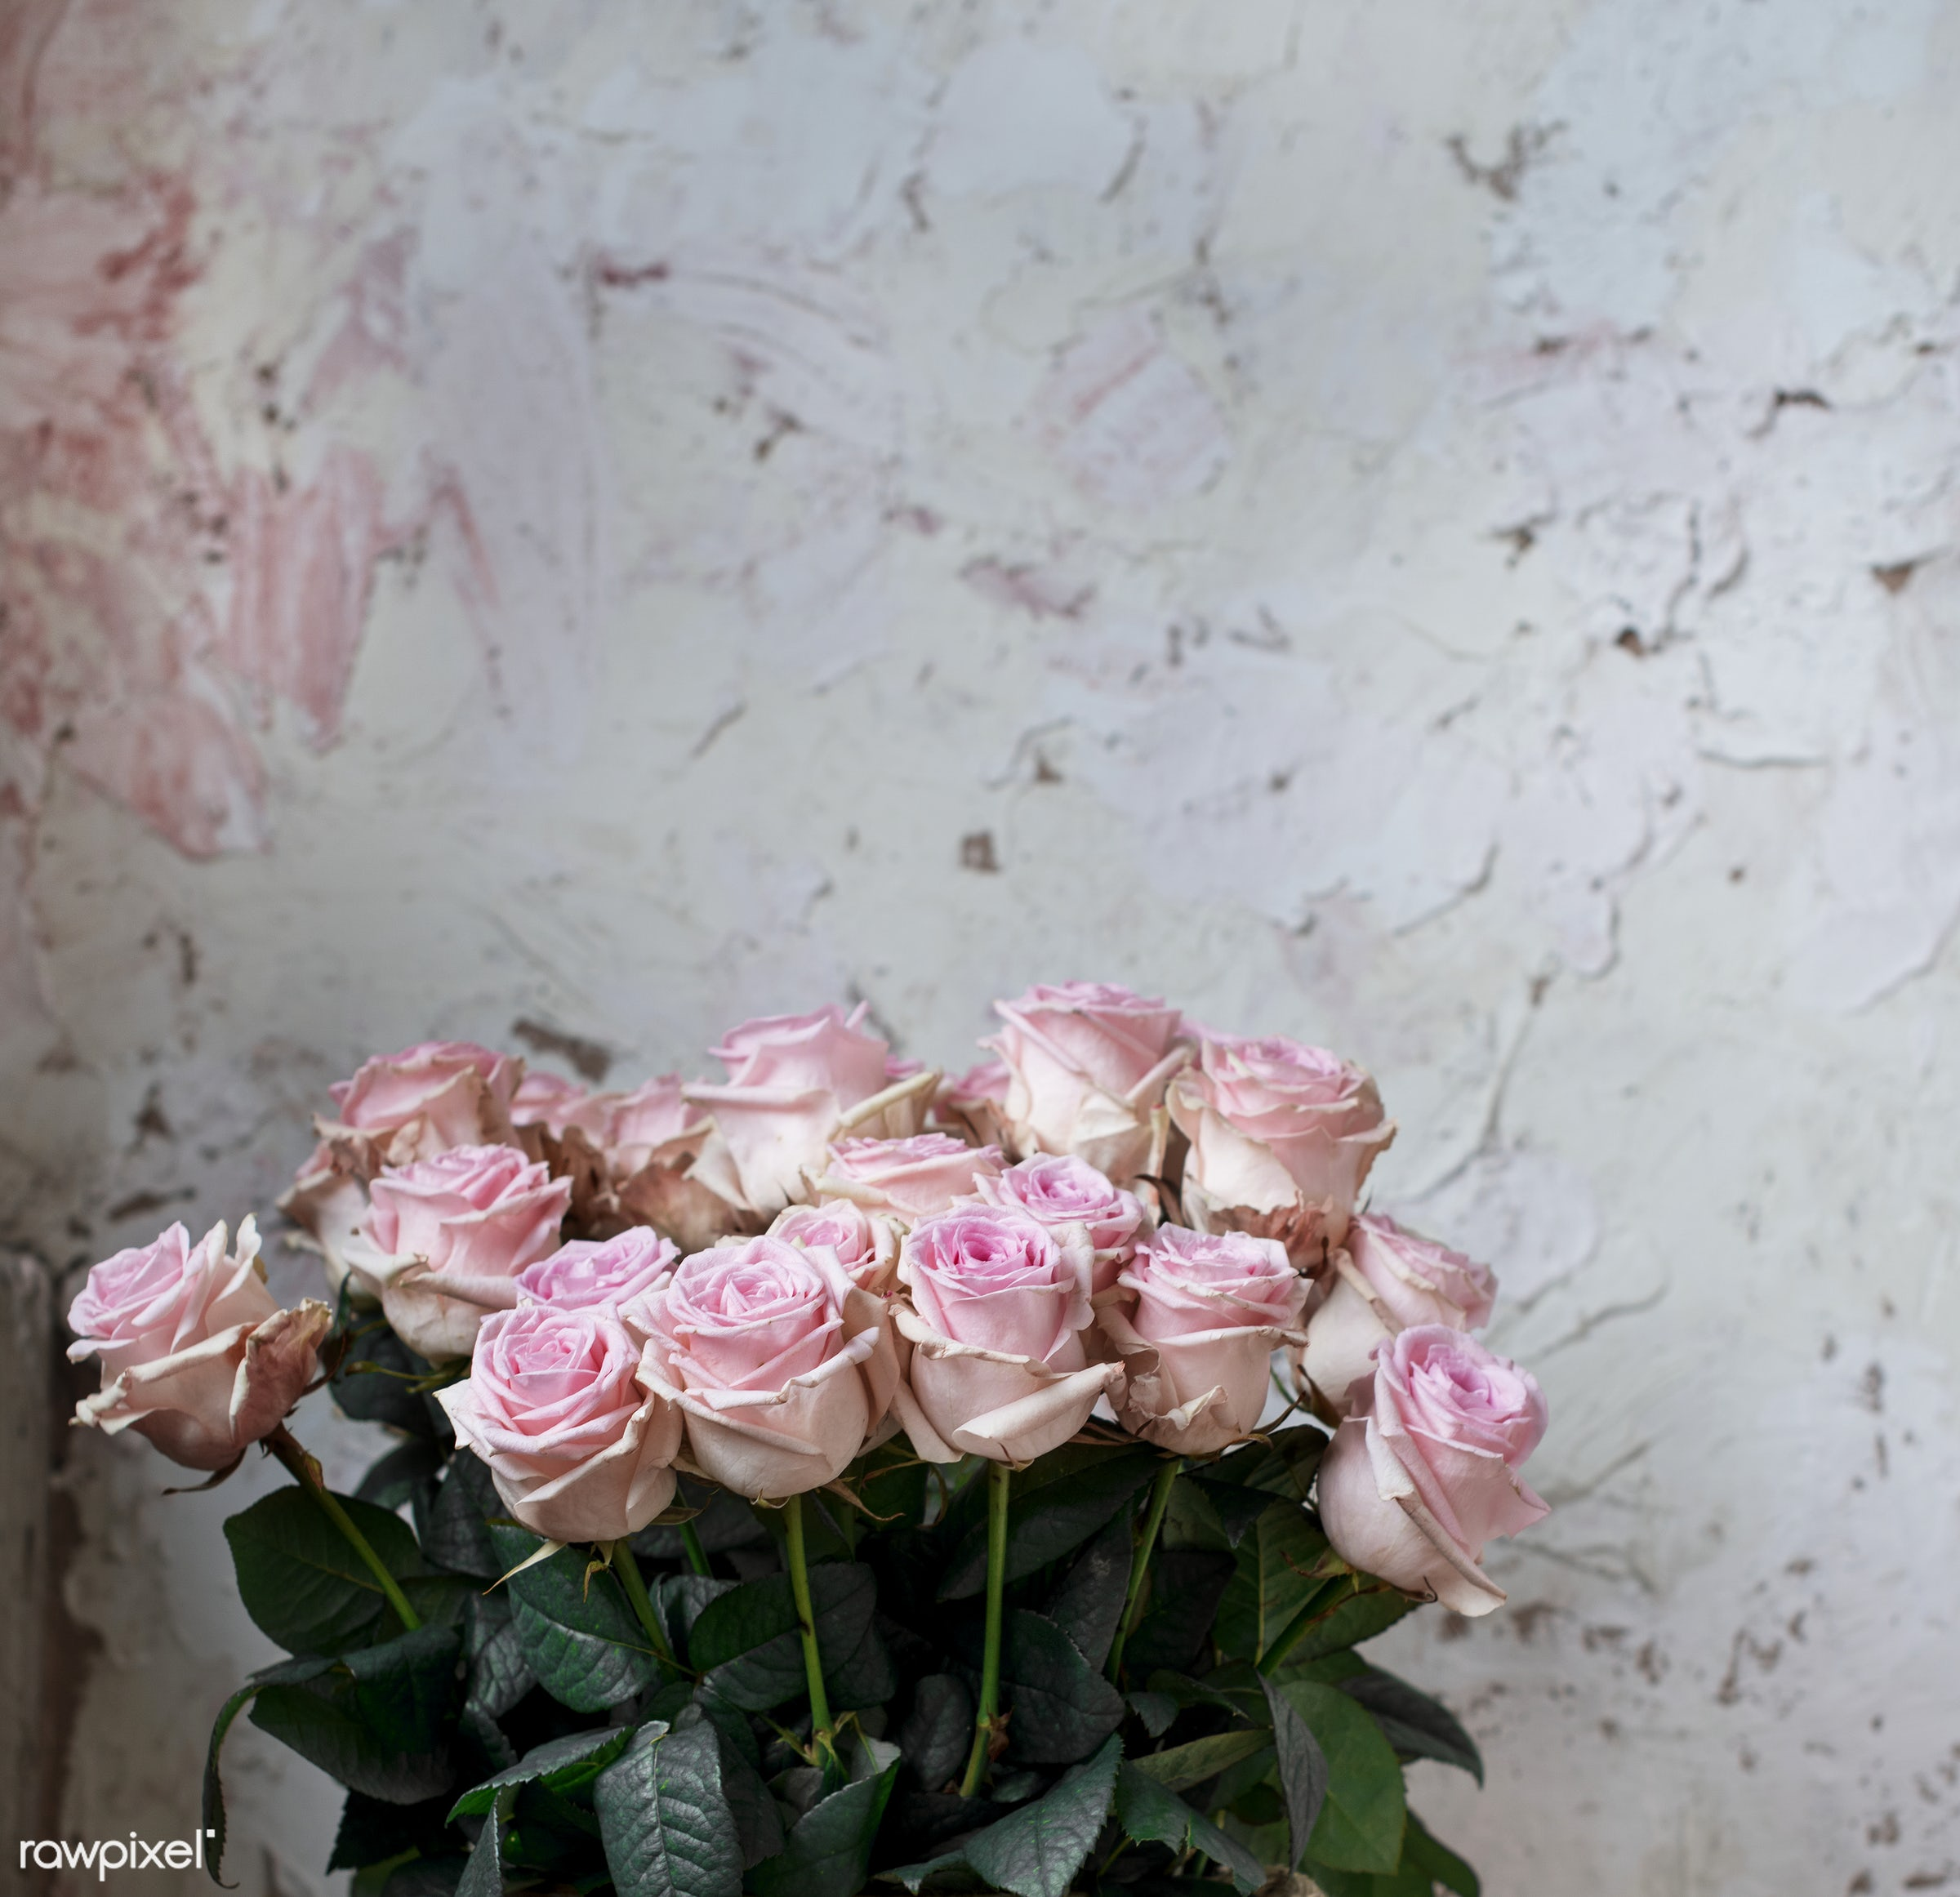 Closeup of a bouquet of roses - bunch, real, bouquet, fresh, flowers, natural, closeup, roses, leaves, pink